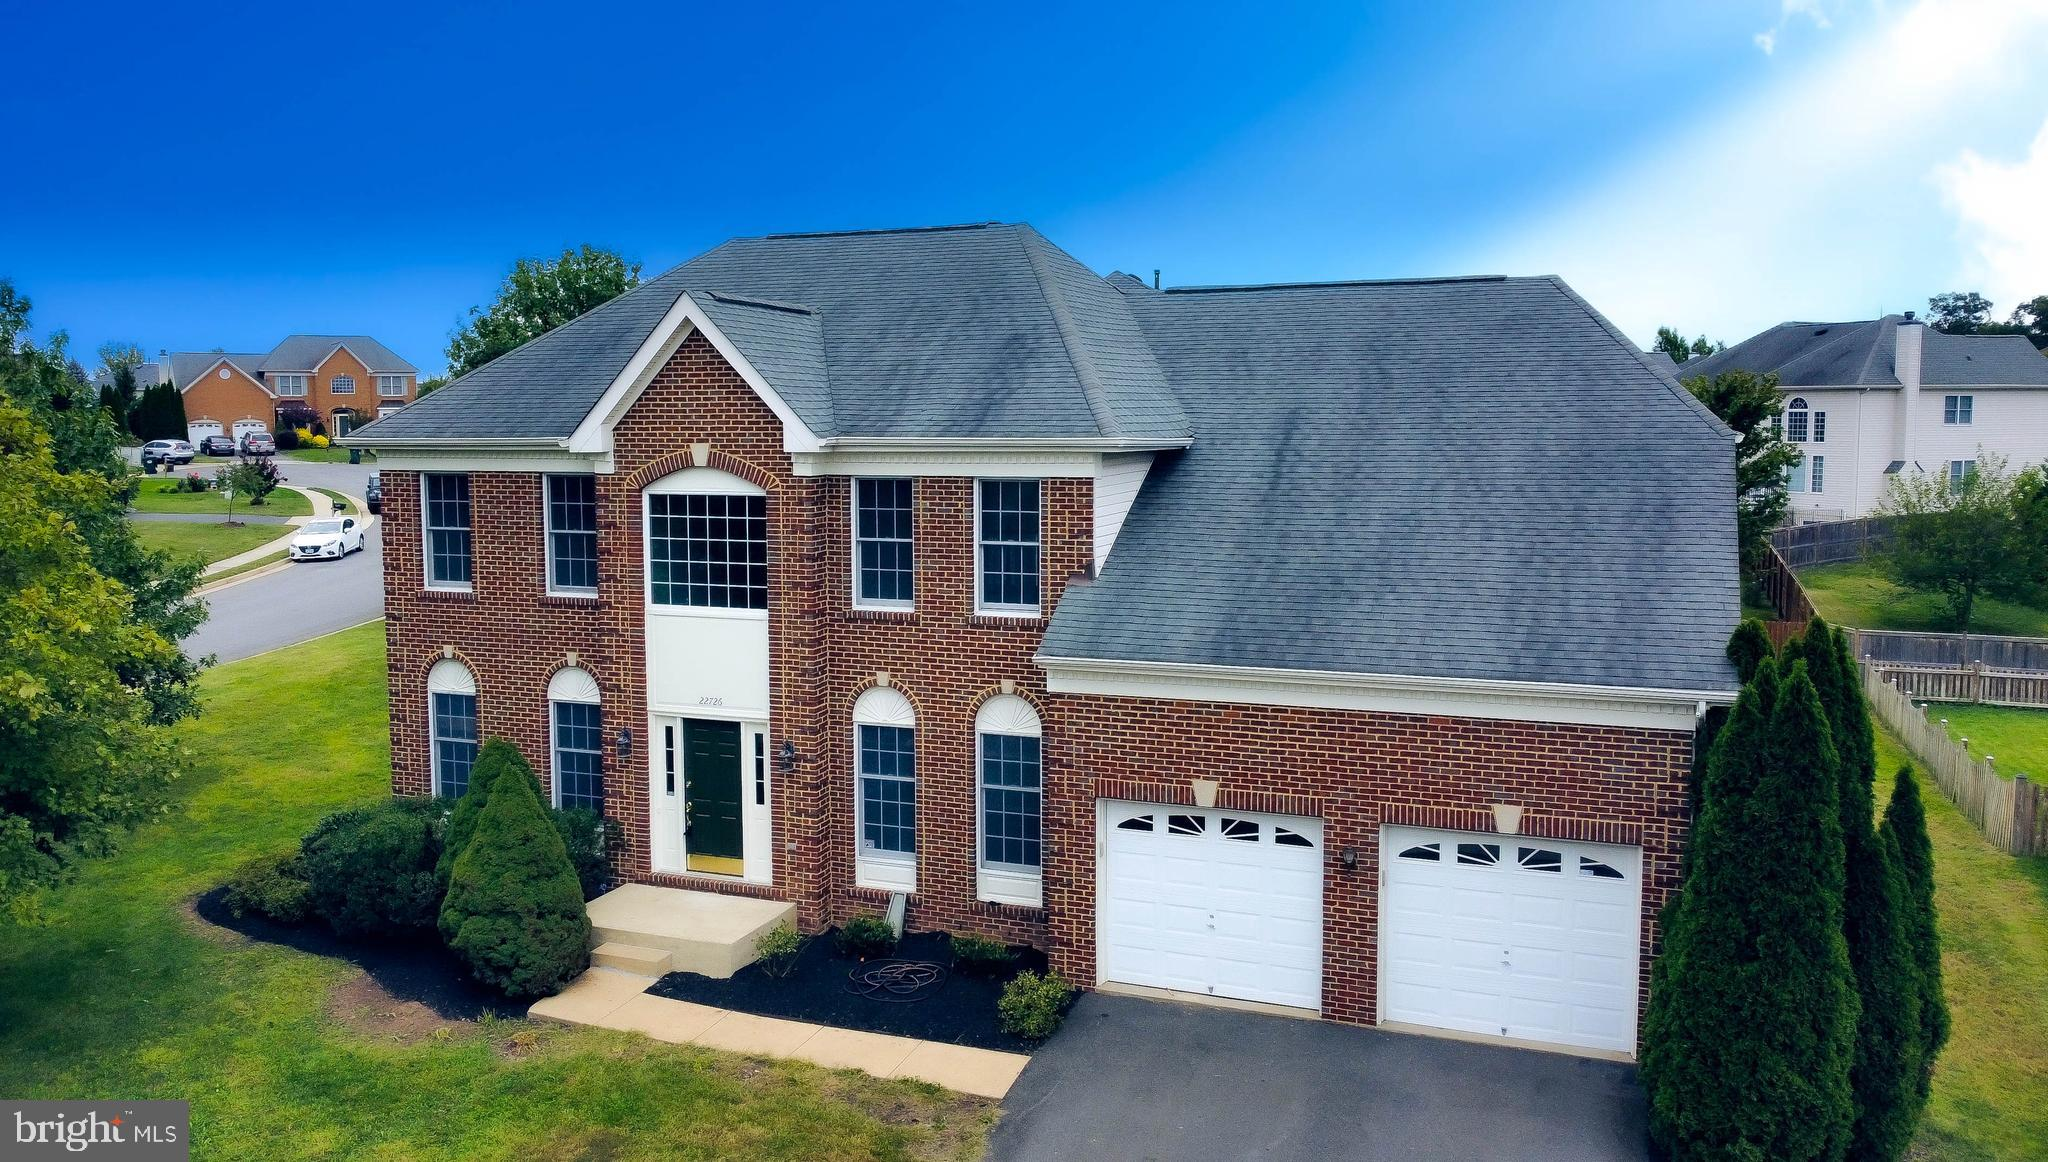 ***COMING TO MARKET ON 9/29/21*****STUNNING 4 BEDROOM/3.5 BATH COLONIAL IN SOUGHT AFTER LOUDOUN VALL